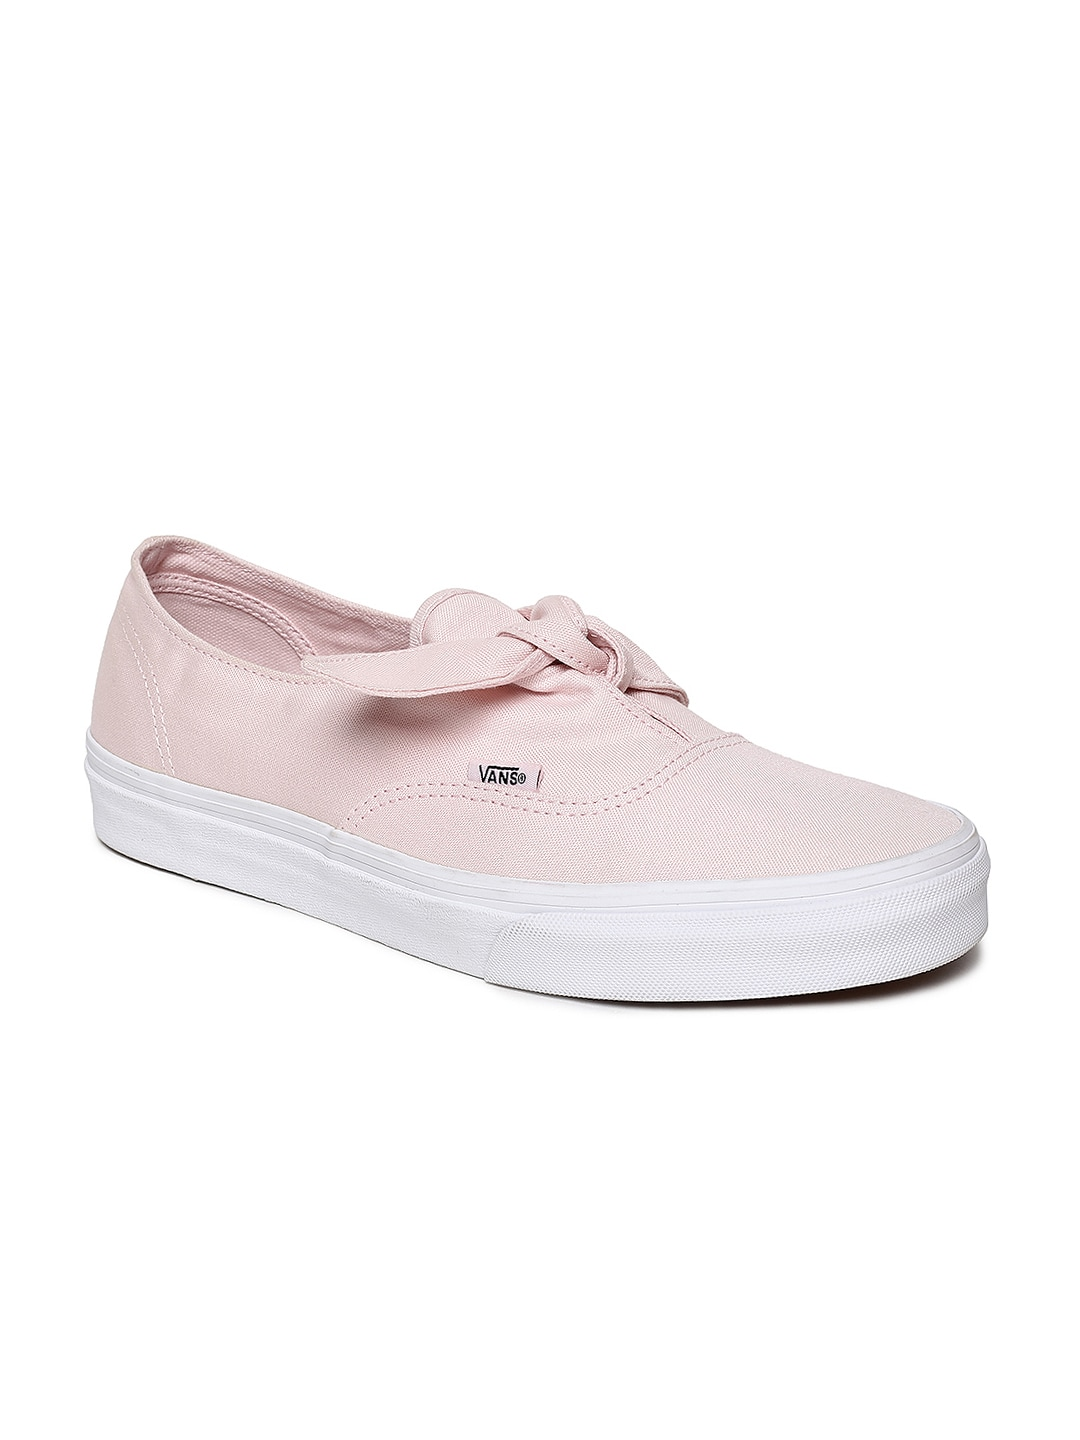 Online for for Vans Buy Women Vans Girls Myntra Shoes Shoes 7vf6mIbyYg